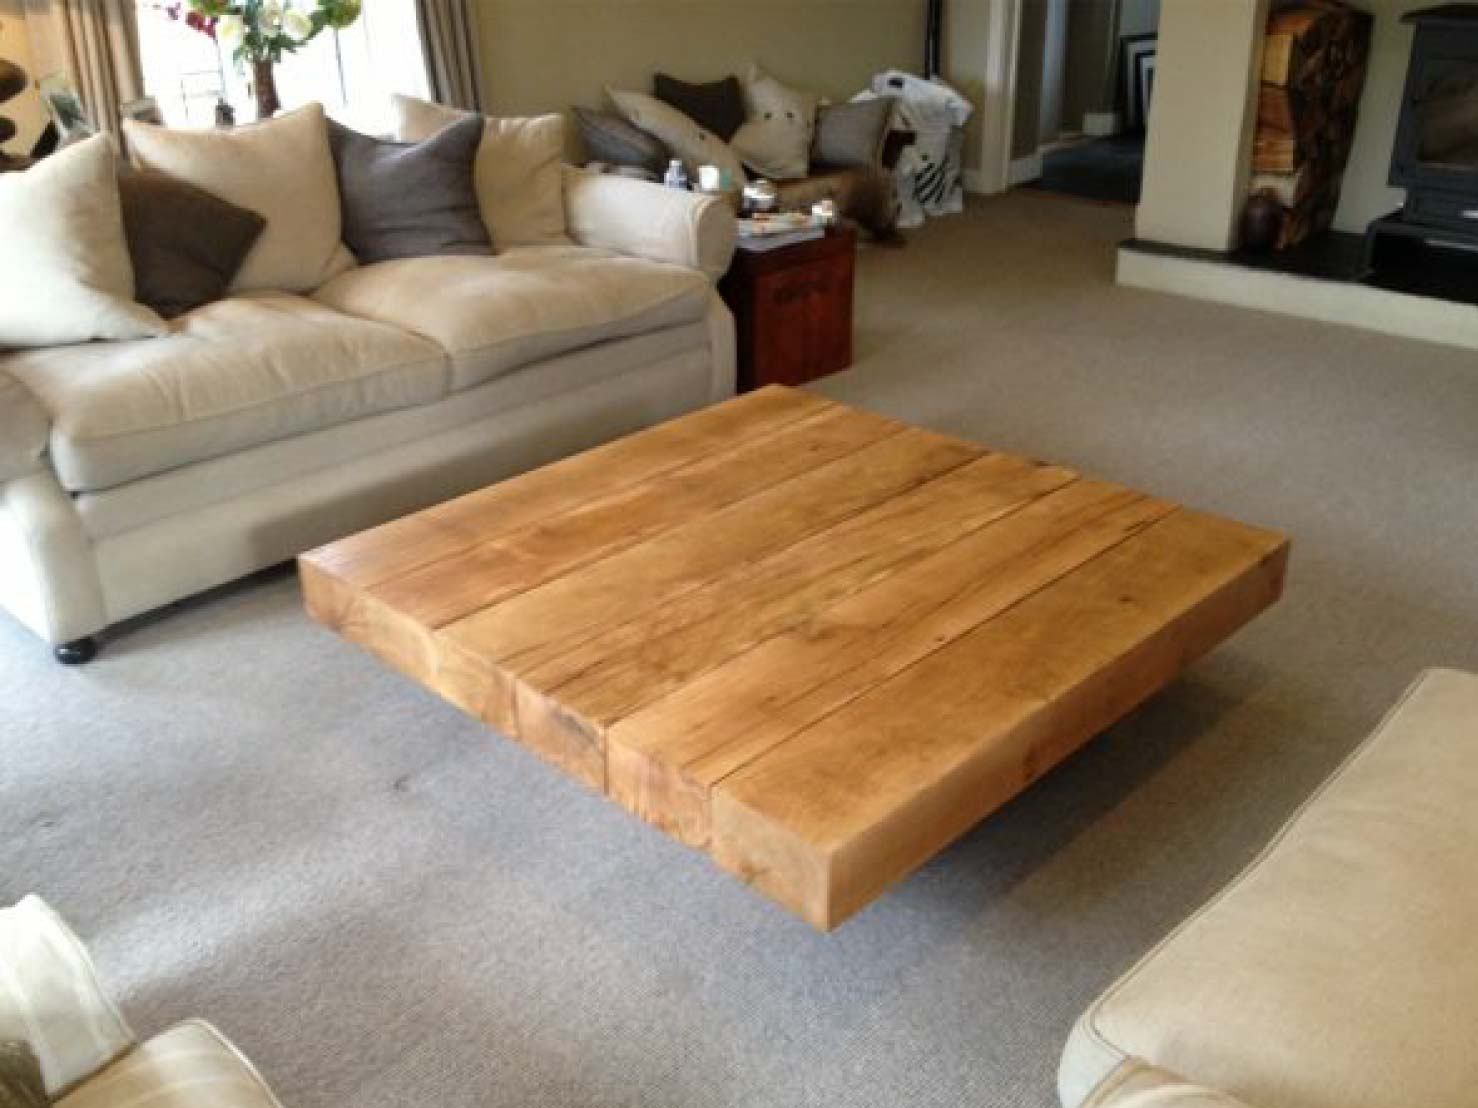 square-oak-coffee-table-from-abacus-tables-arabica-floating-style-1.3m-project-59